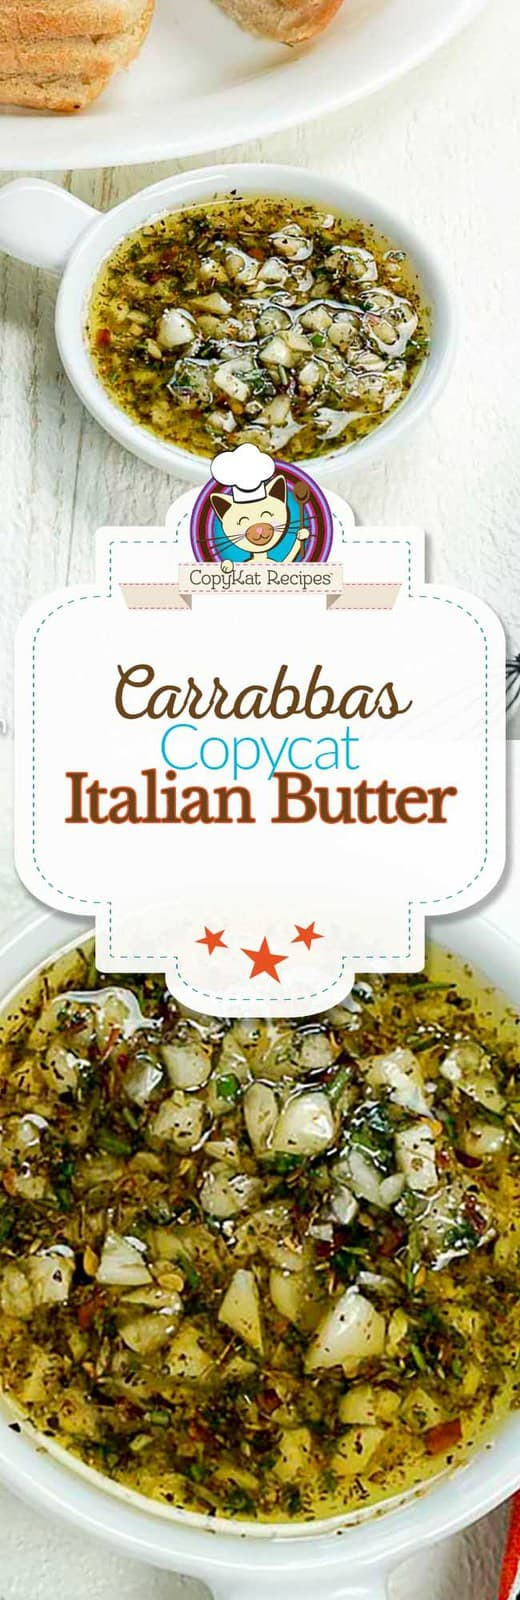 Recreate this Carrabbas Italian Butter in a matter of minutes with this easy copycat recipe.